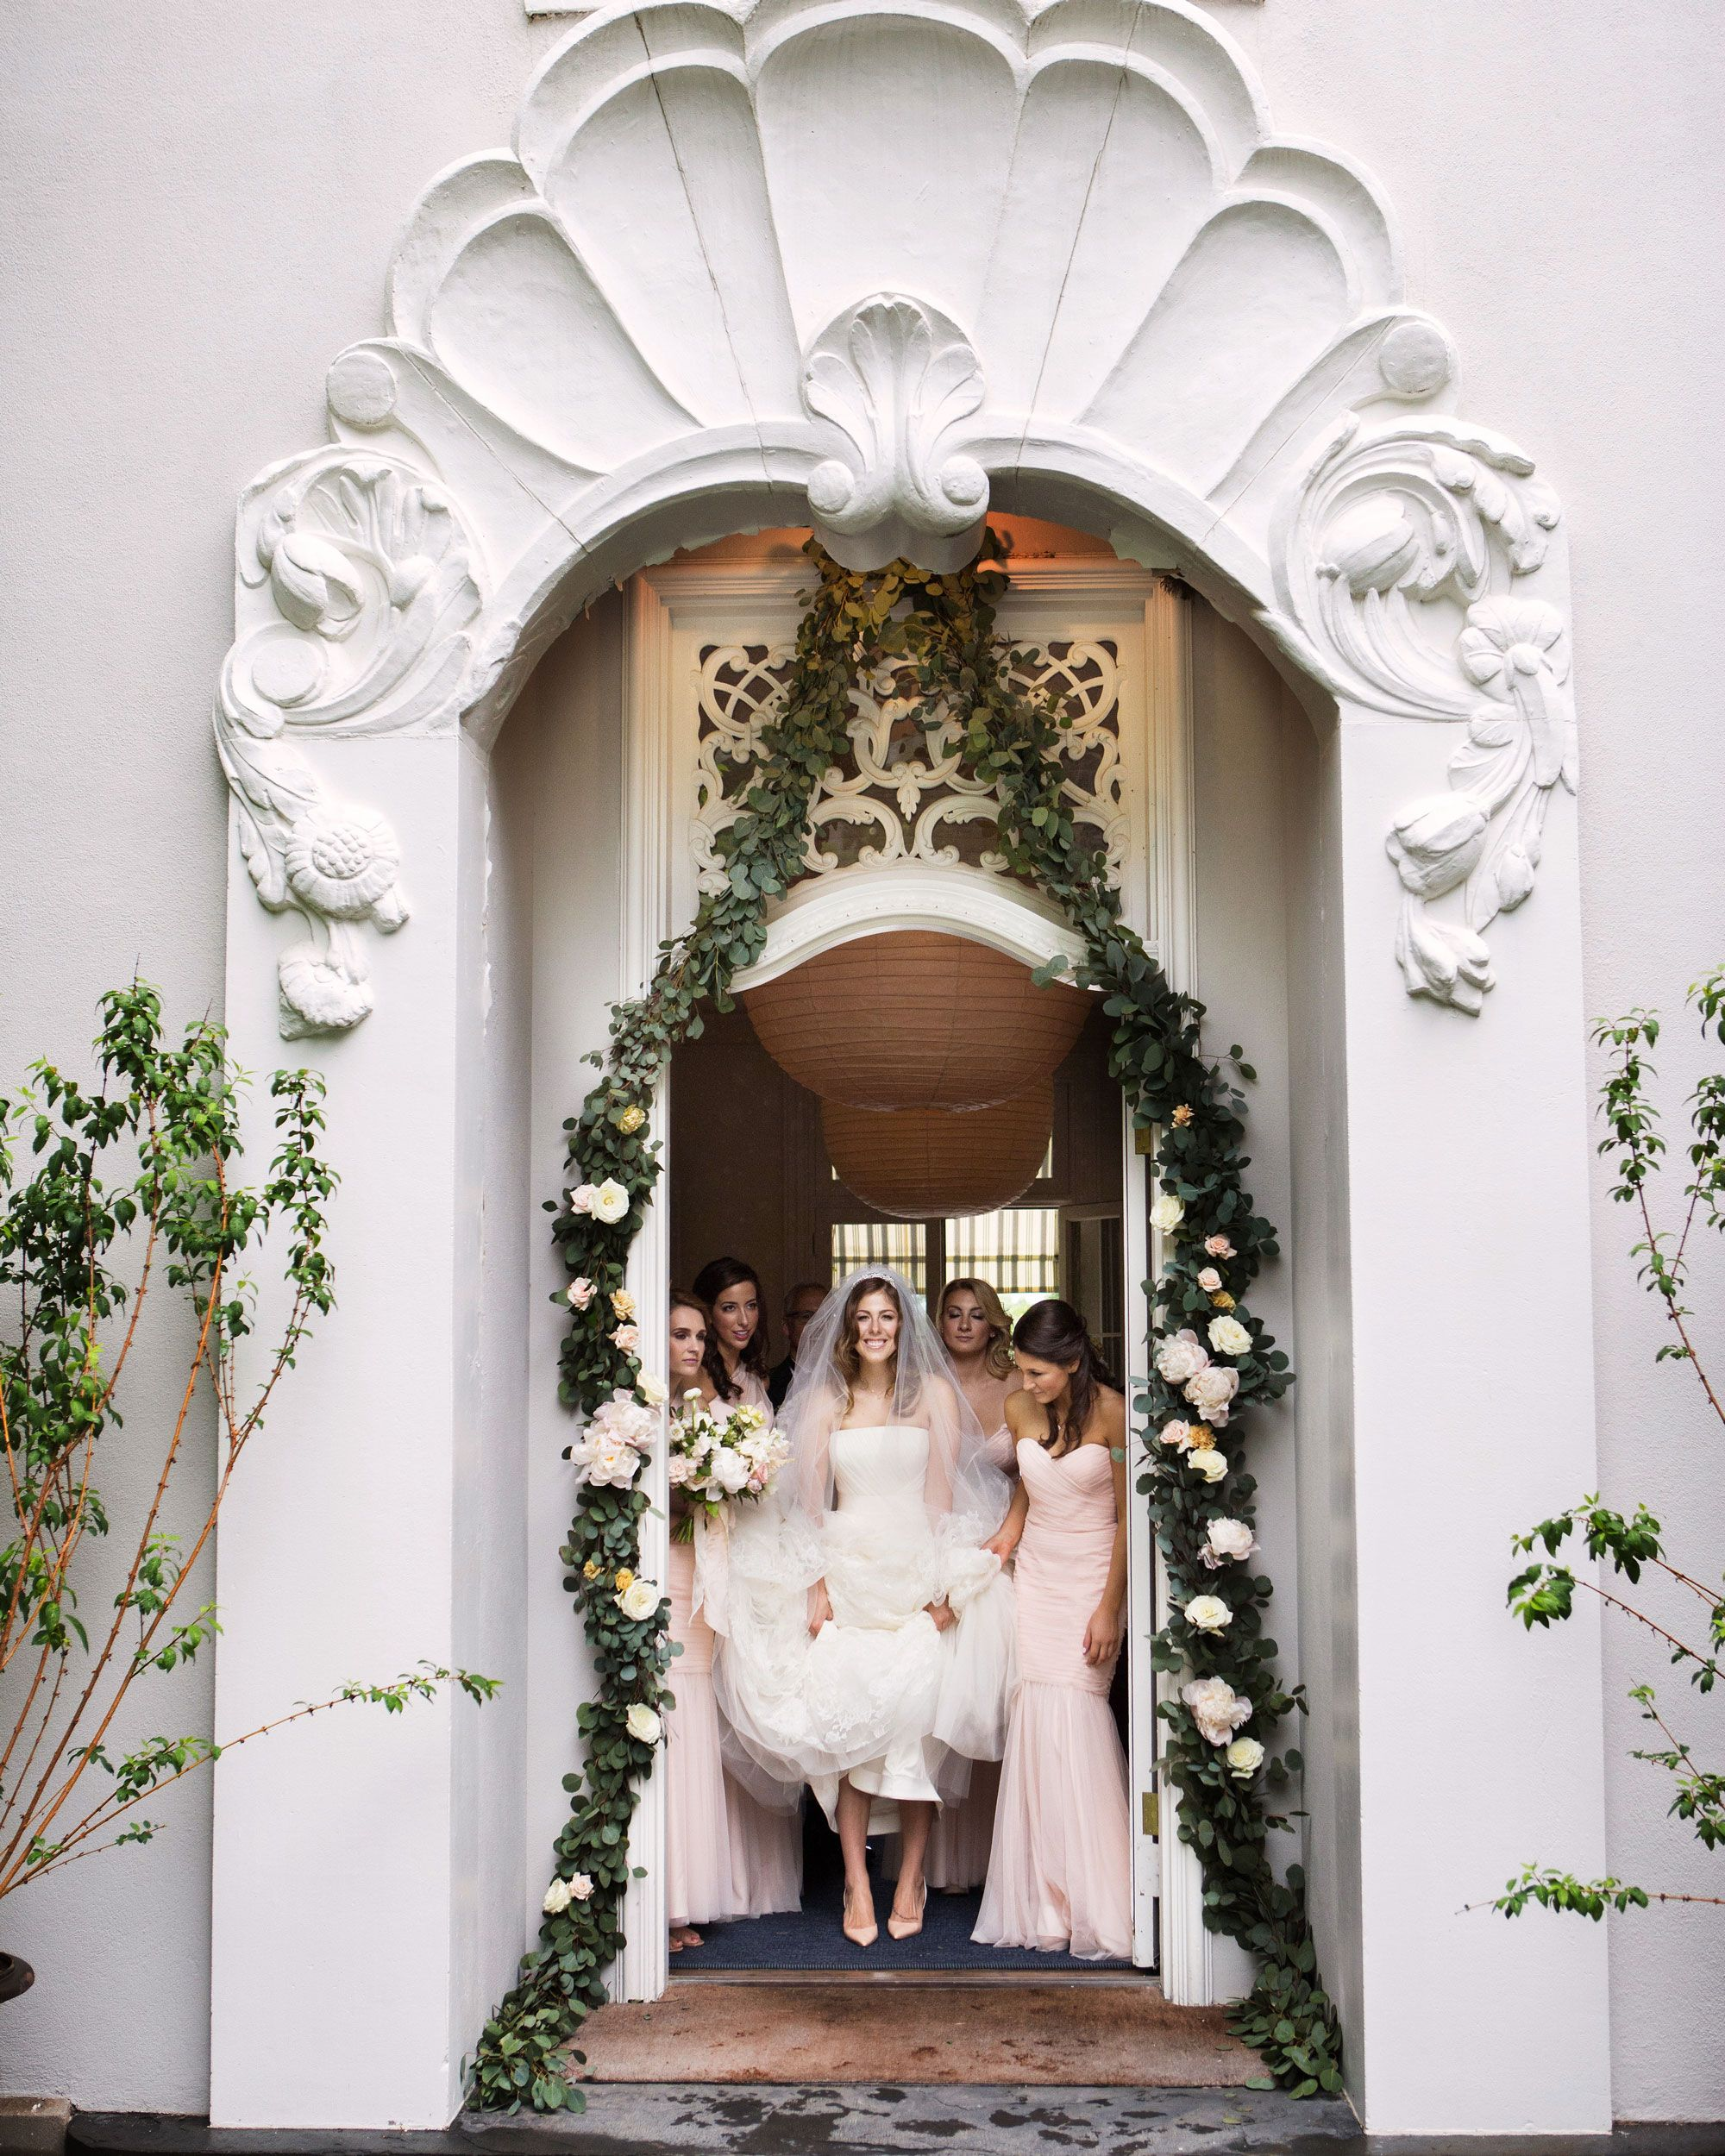 A Whimsical Wedding at an Upstate New York Mansion in 2020